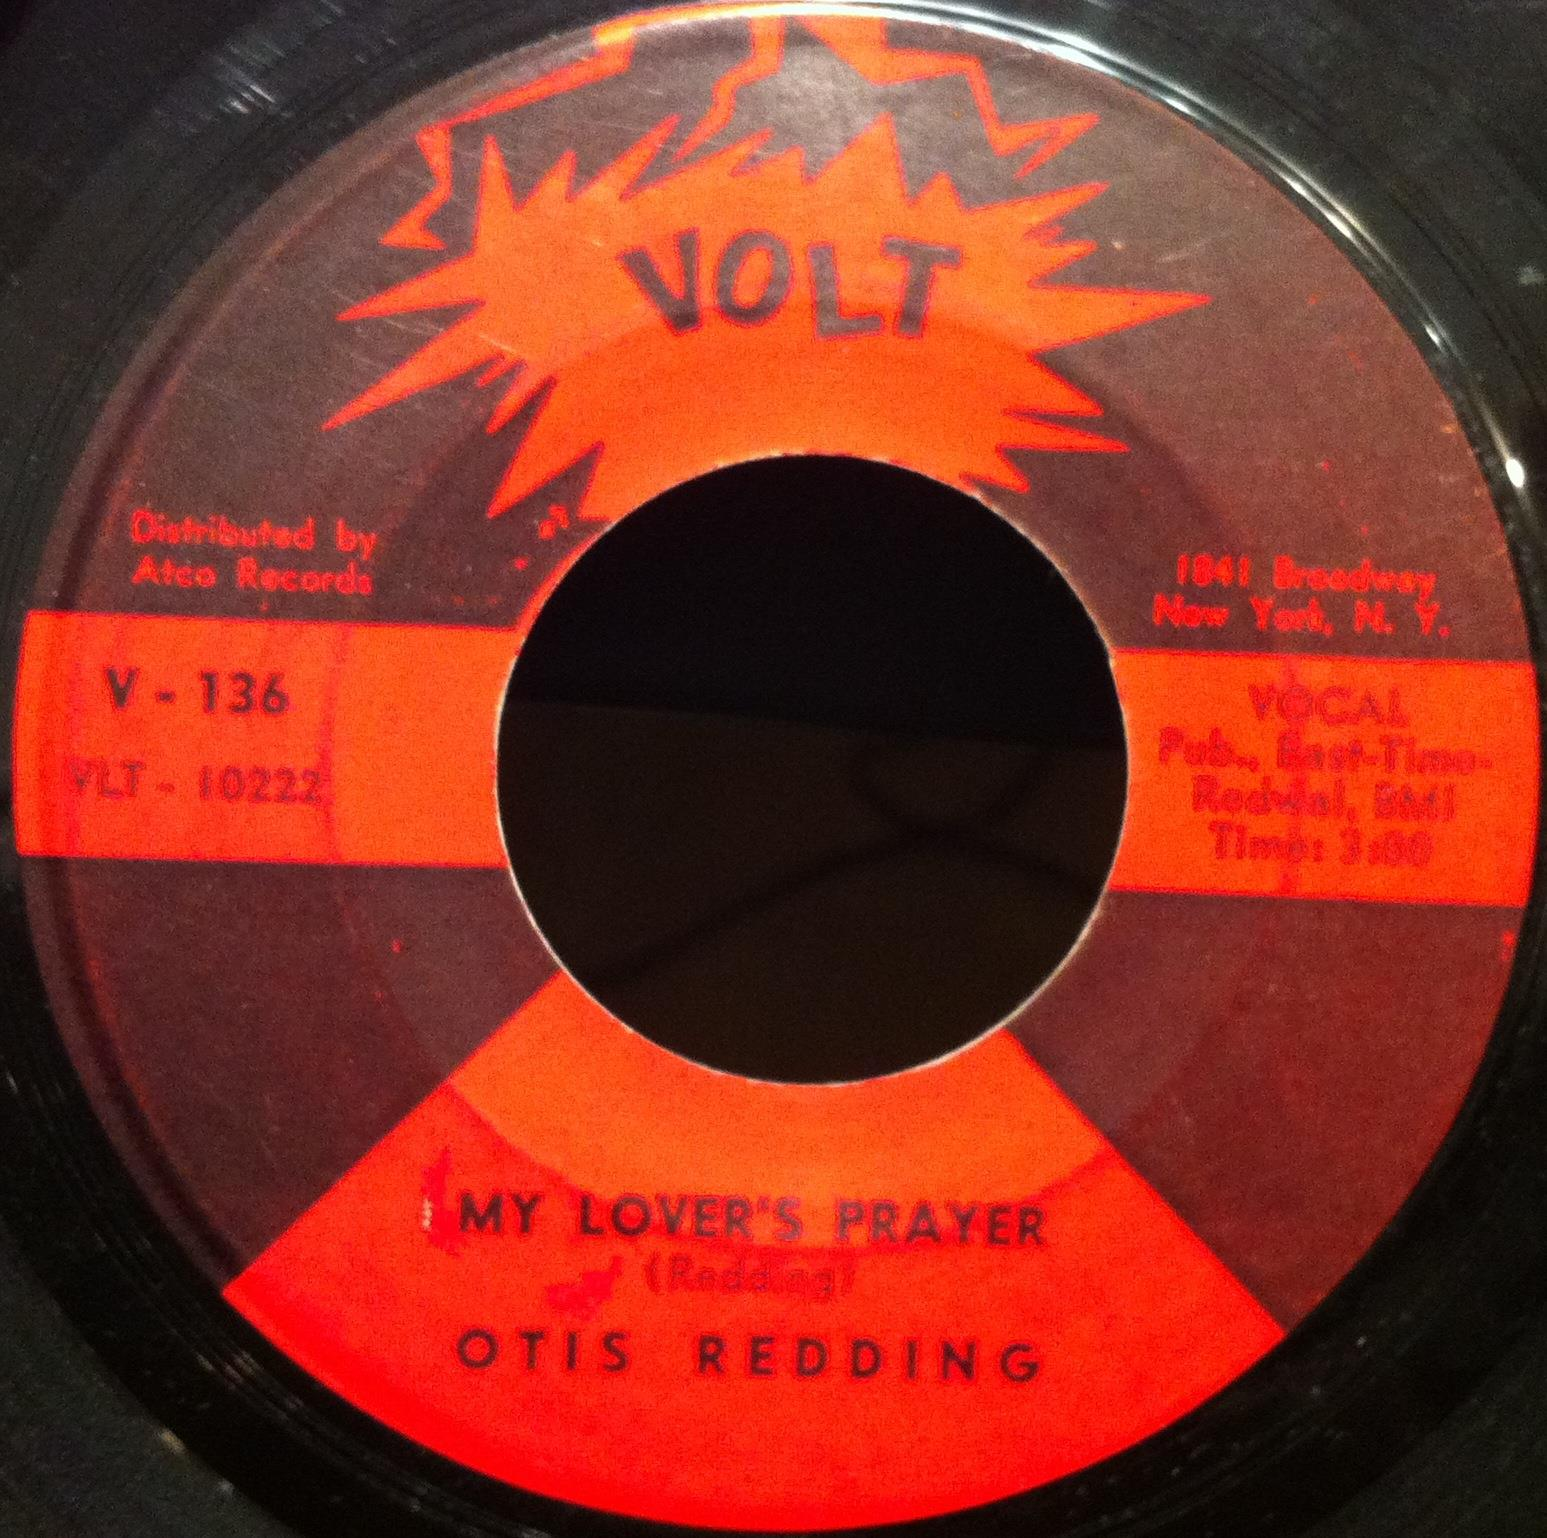 "OTIS REDDING - Otis Redding My Lover's Prayer - Don't Mess With Cupid 7"" Vg Volt V 136 Vinyl (my Lover's Praye"